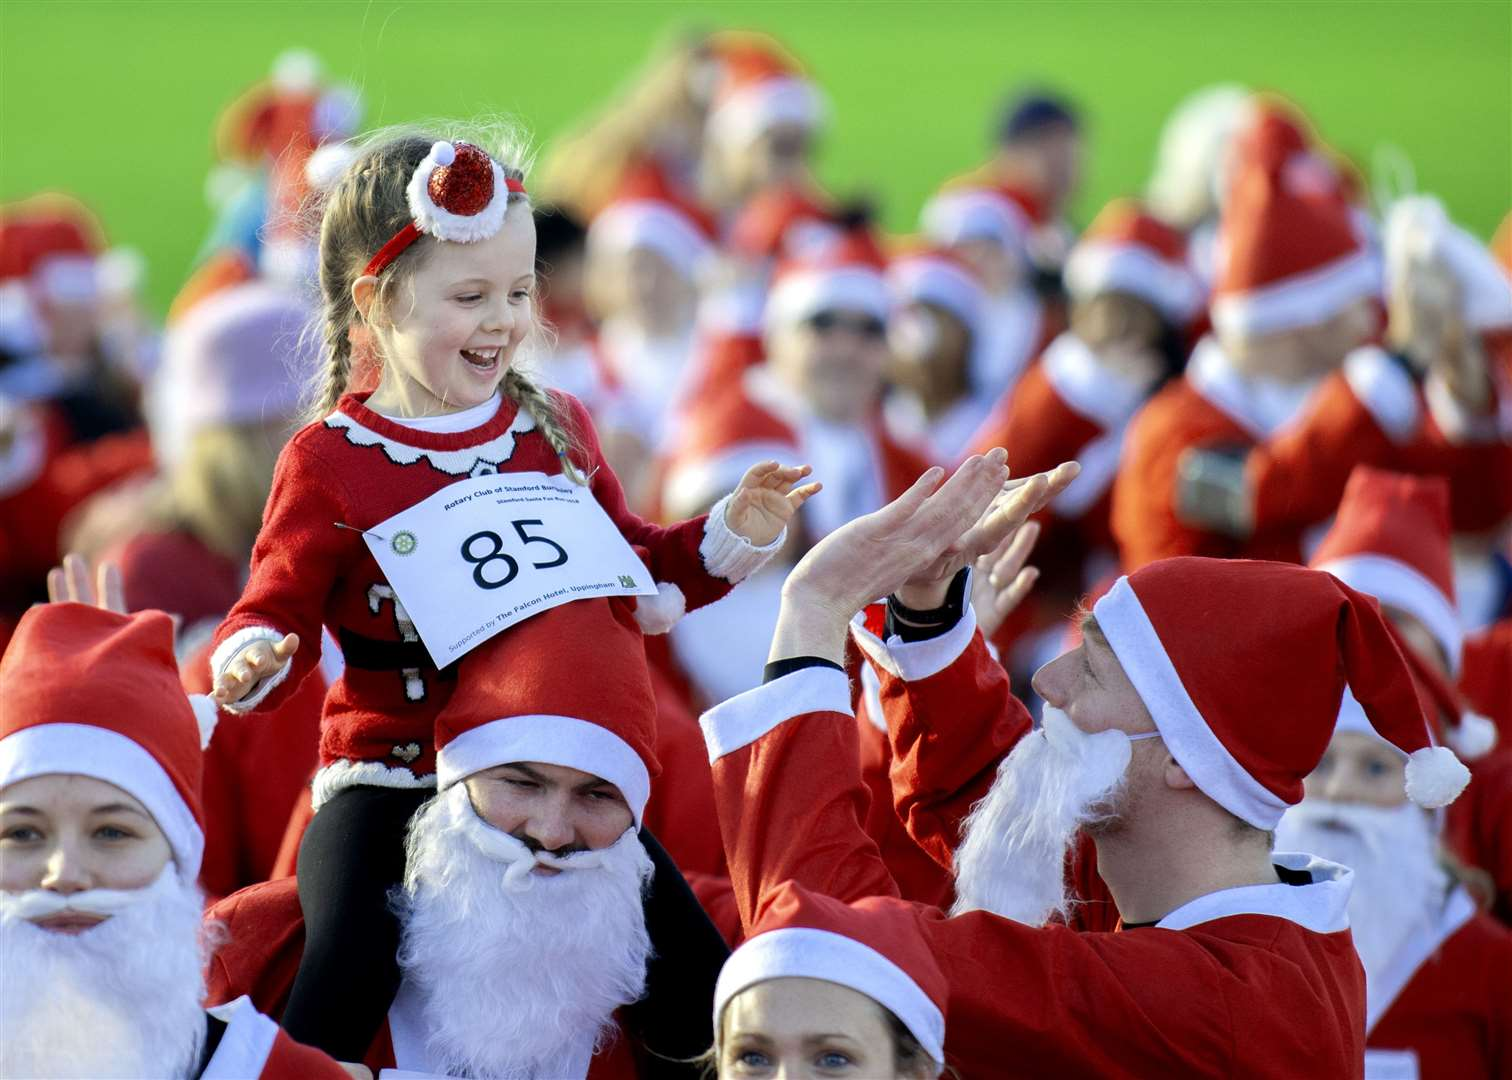 The 2018 Stamford Santa Fun Run drew a large number of participants